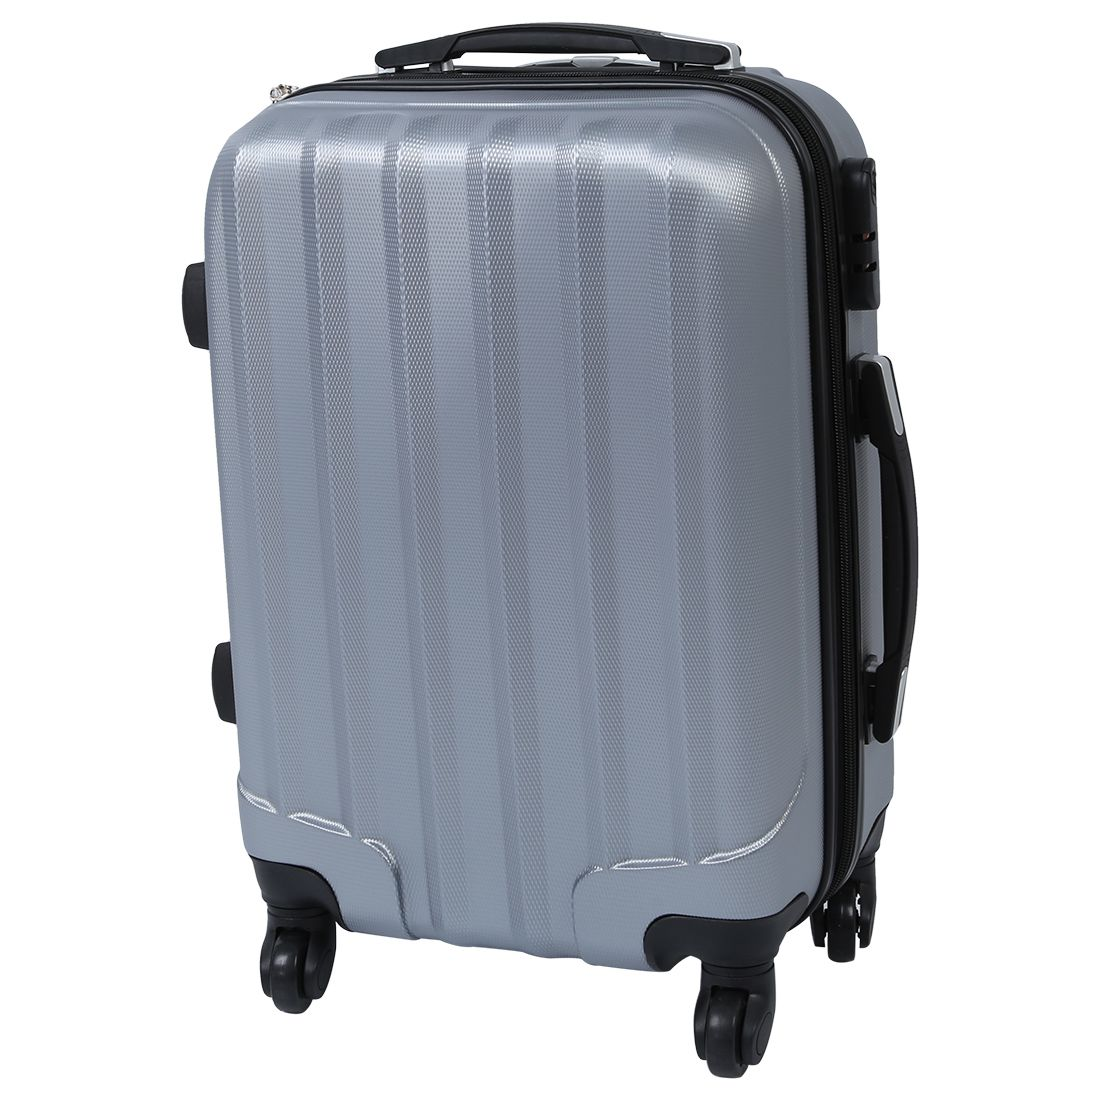 Fashion 4 wheels trolley suitcase gray 20-inch ...